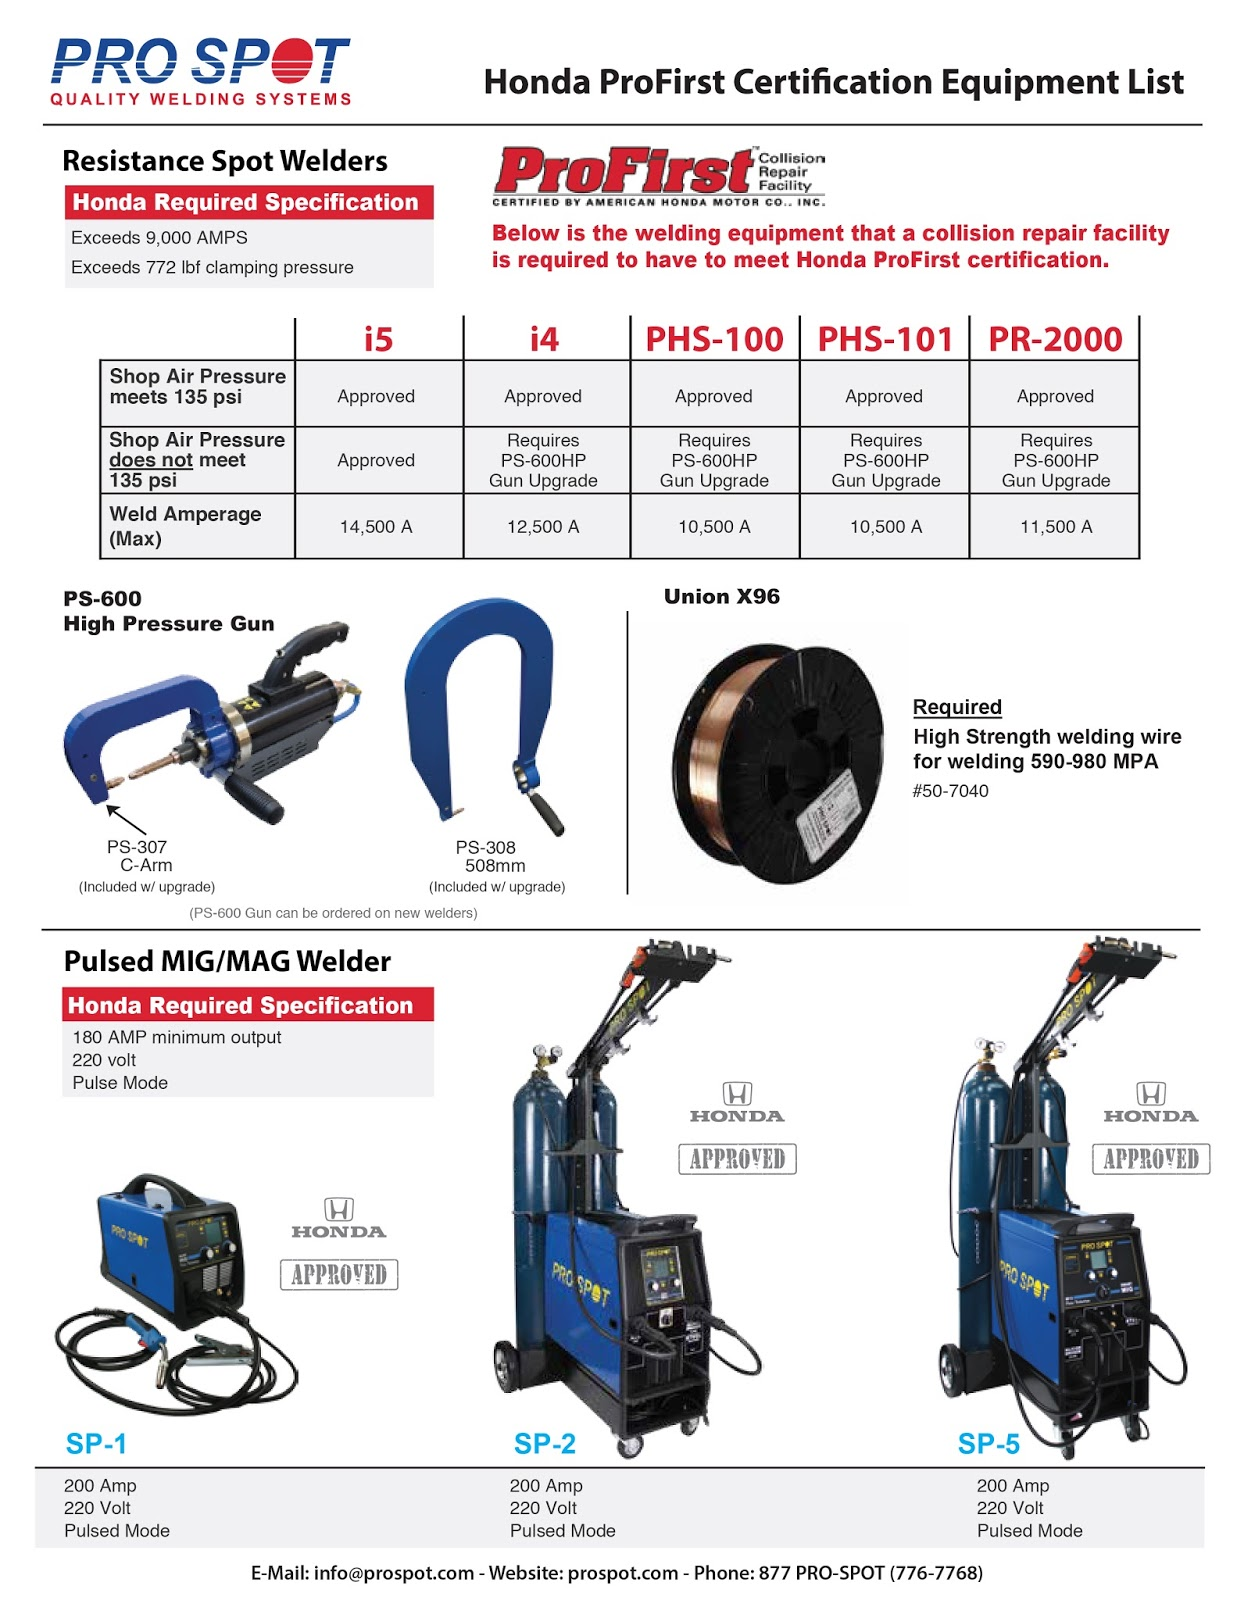 We Are Proud To Announce The Pro Spot Awards Of 2016 Welding Machine Diagram Honda Profirst Certification Equipment List High Pressure Welders Wire And Migs